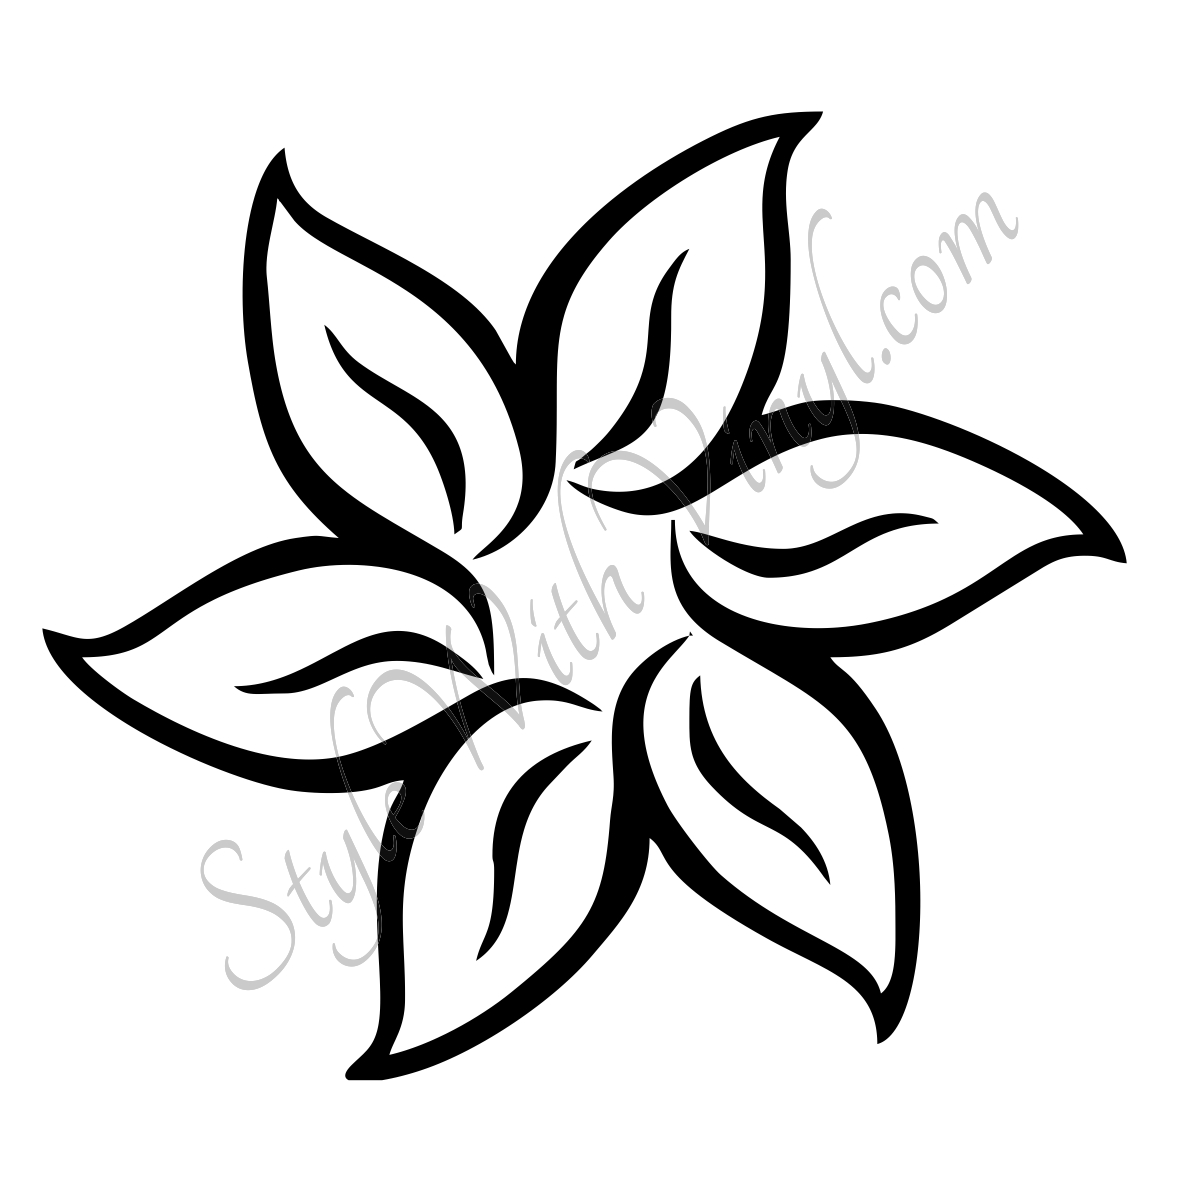 Easy drawing flowers at getdrawings free for personal use easy 1200x1200 draw easy flower drawings simple rose drawing pinterest easy mightylinksfo